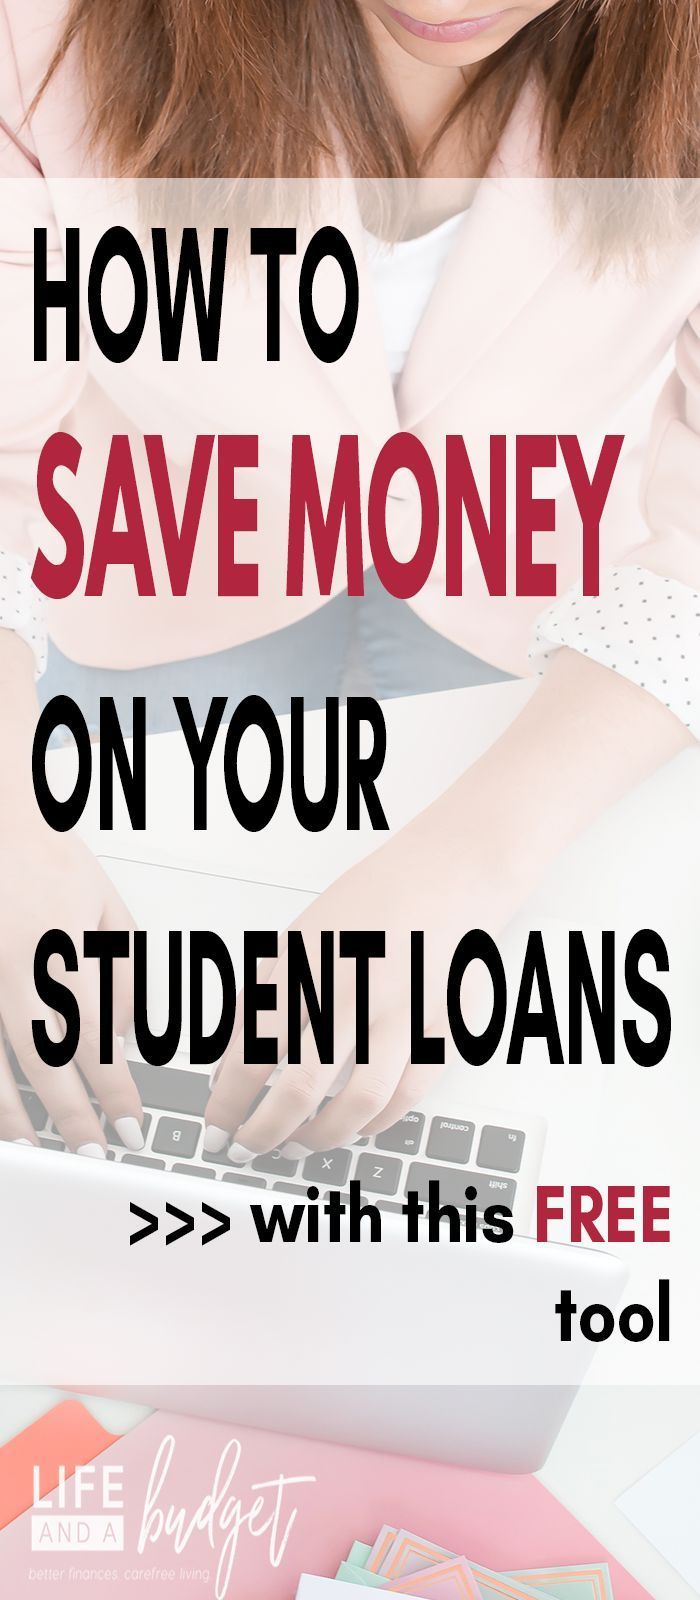 Are making any progress on paying off your student loans? Do you have a high interest rate on your student loans? You may want to consider this option to lower your rate and pay off your loans quicker. #studentloans #studentloandebt #studentloan